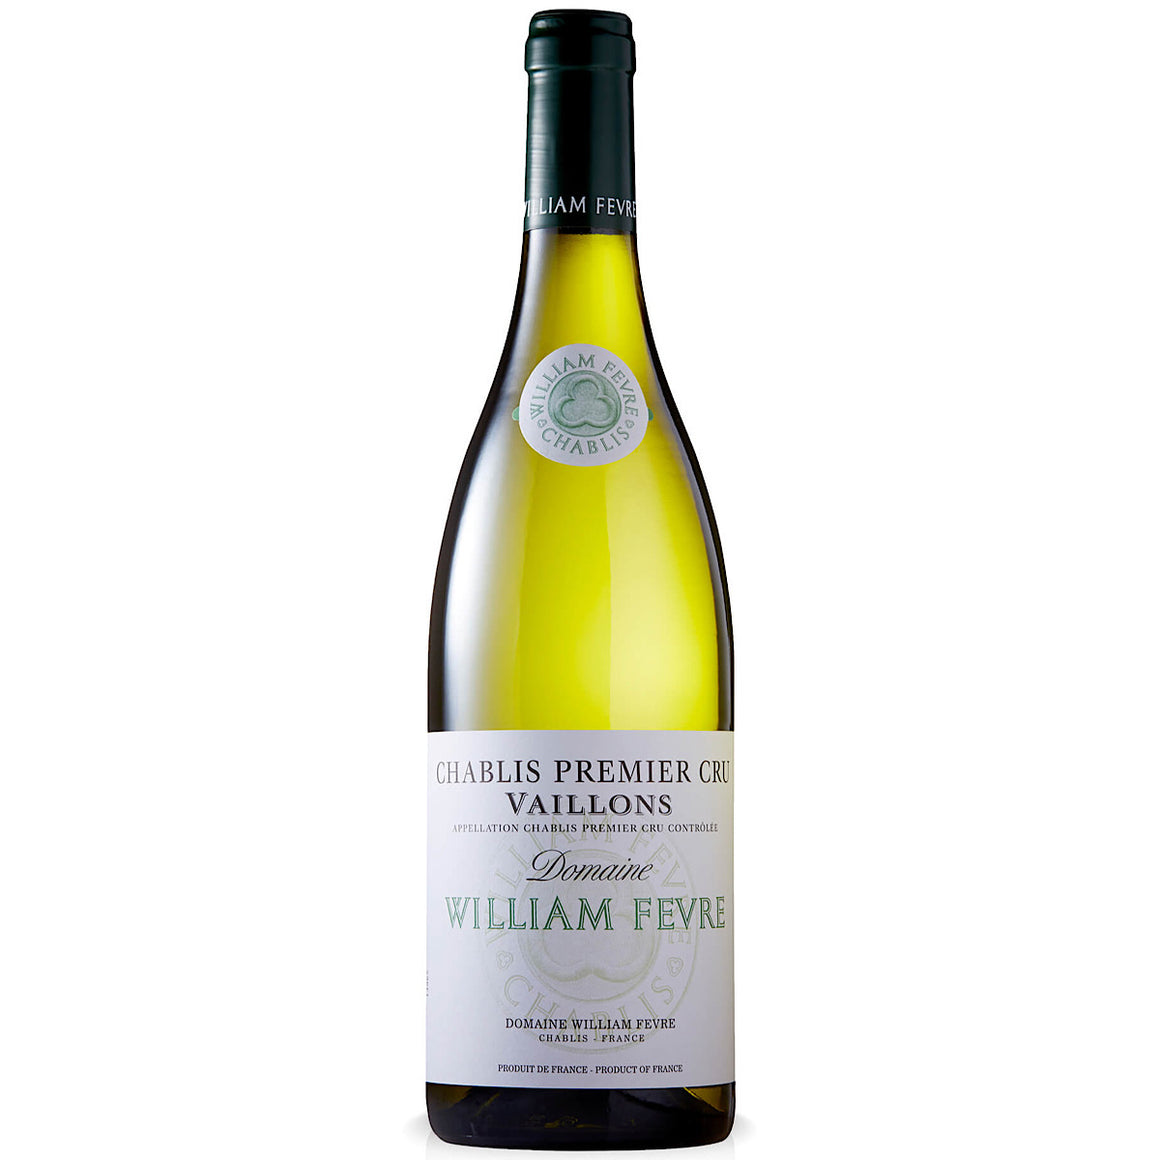 William Fevre 1er cru Vaillons 2017 75cl